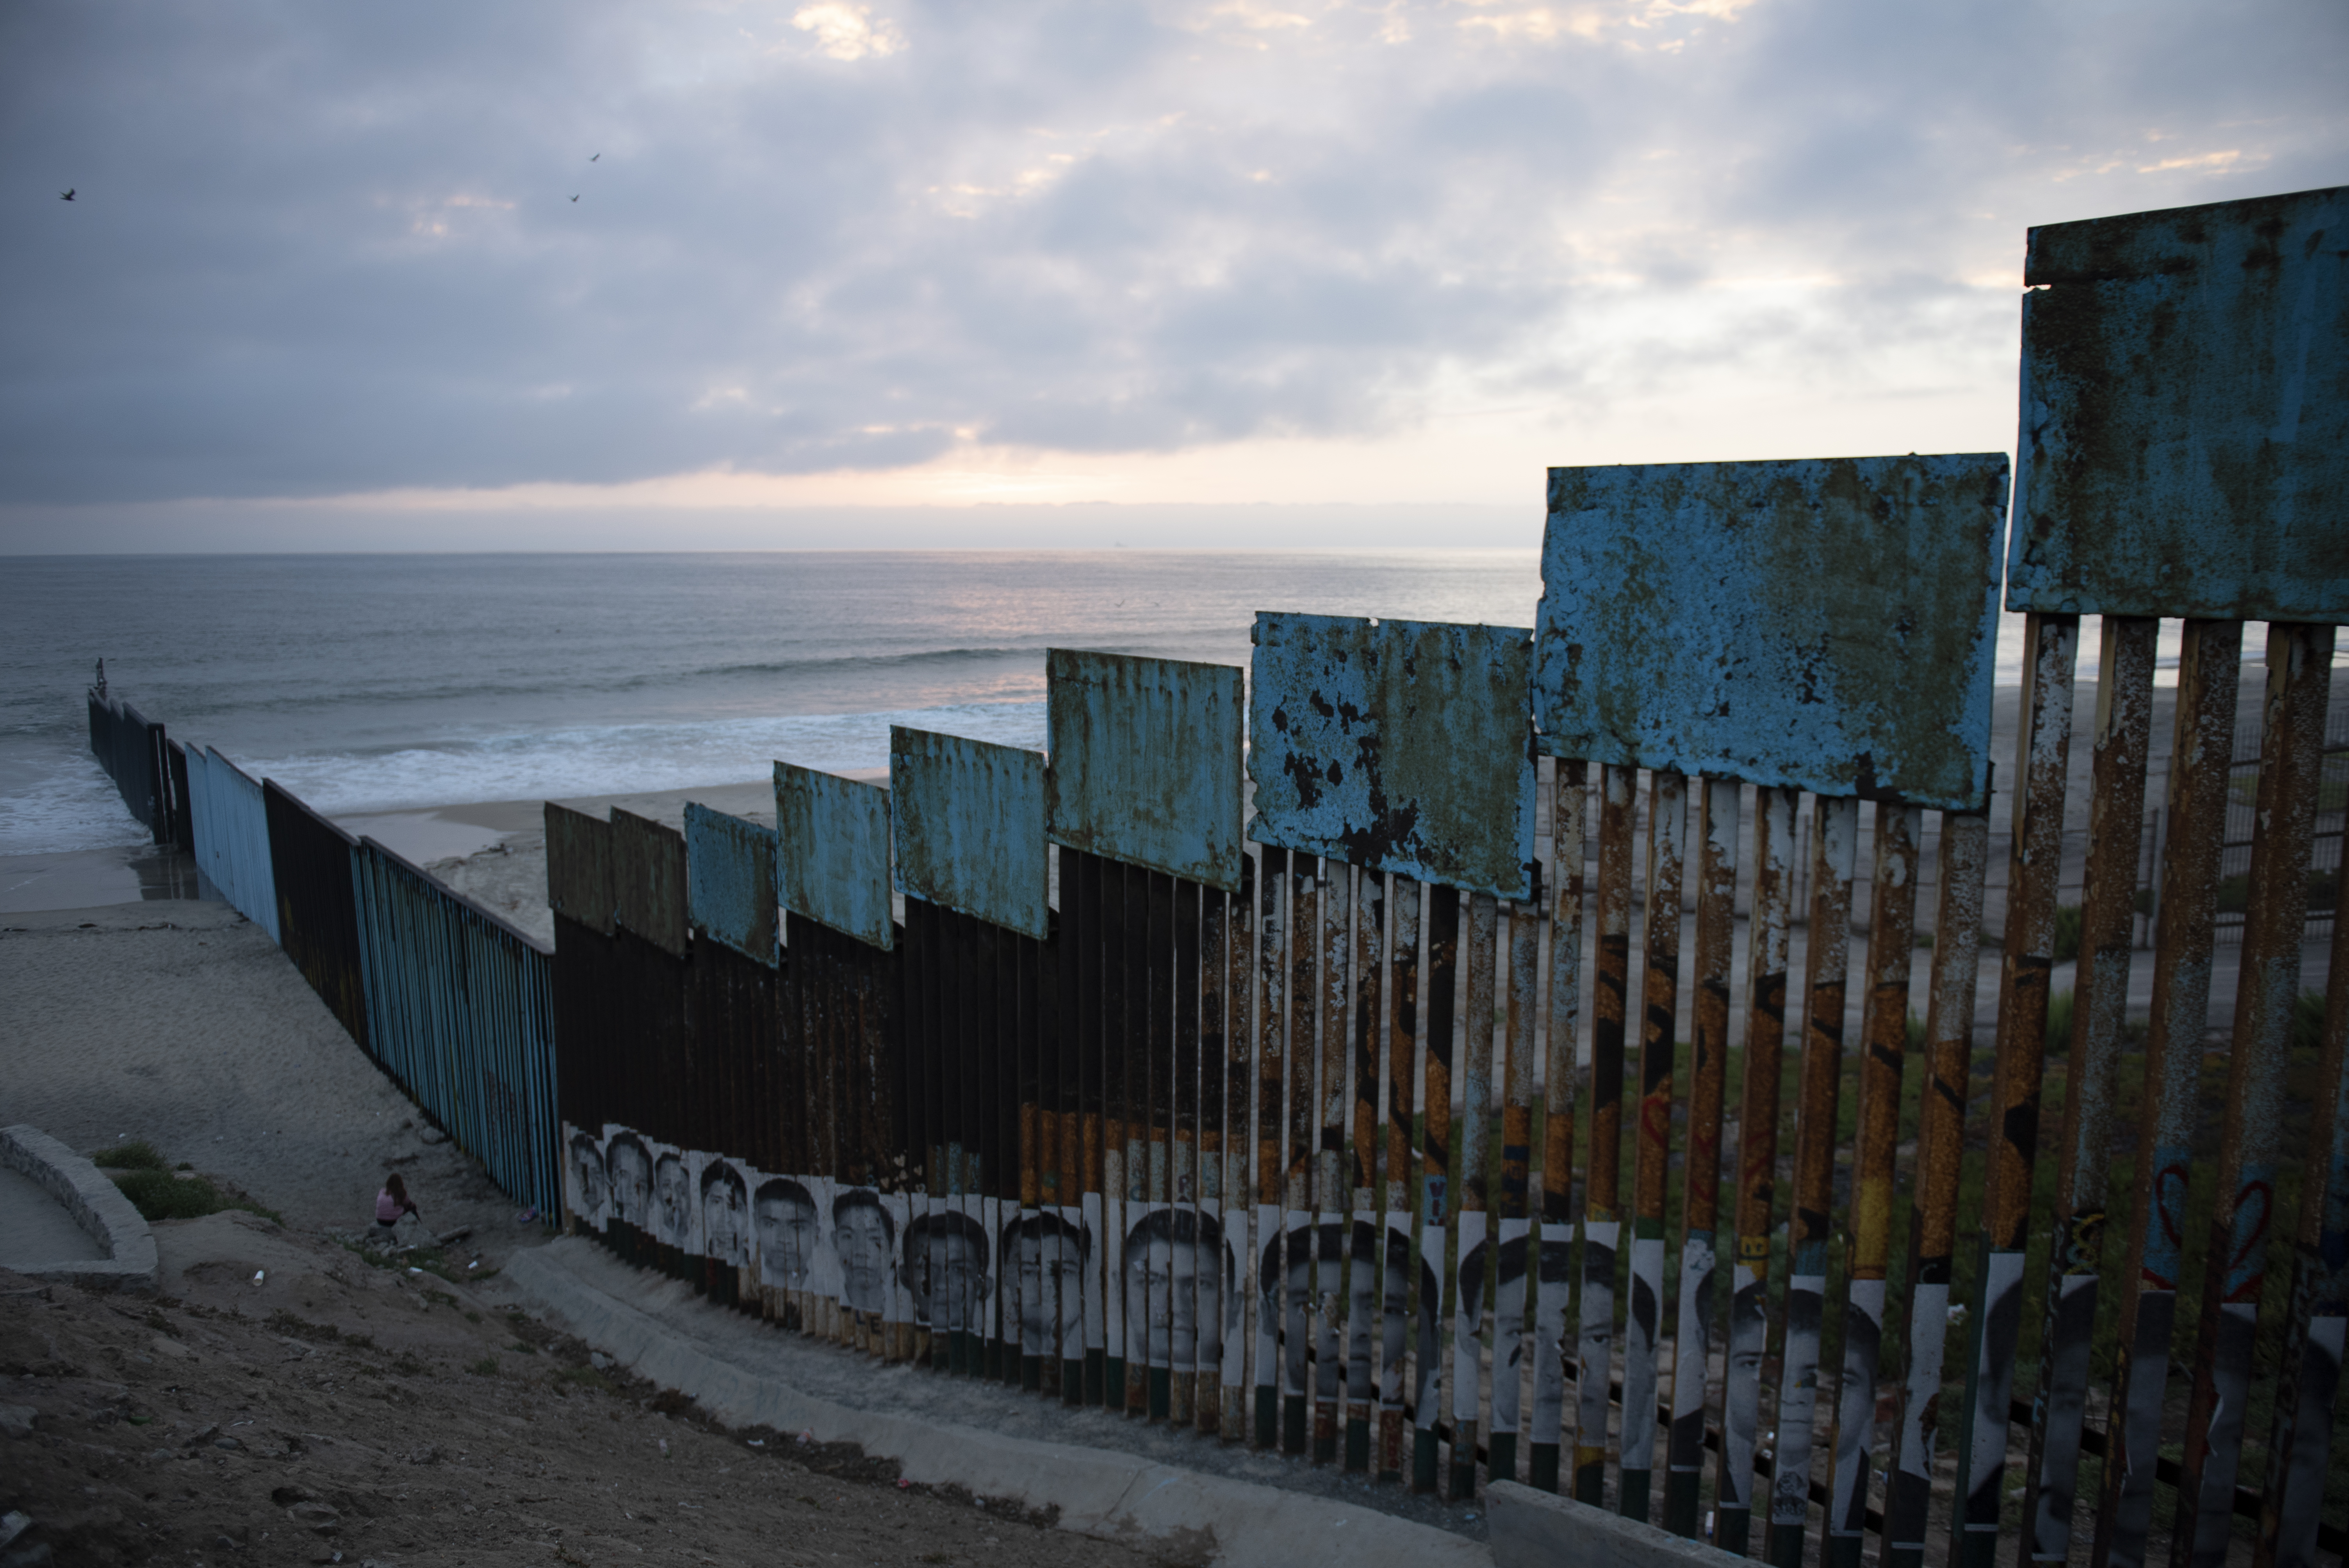 In Tijuana, the border wall between the United States and Mexico features protest art and portraits of missing students, and extends into the Pacific Ocean.